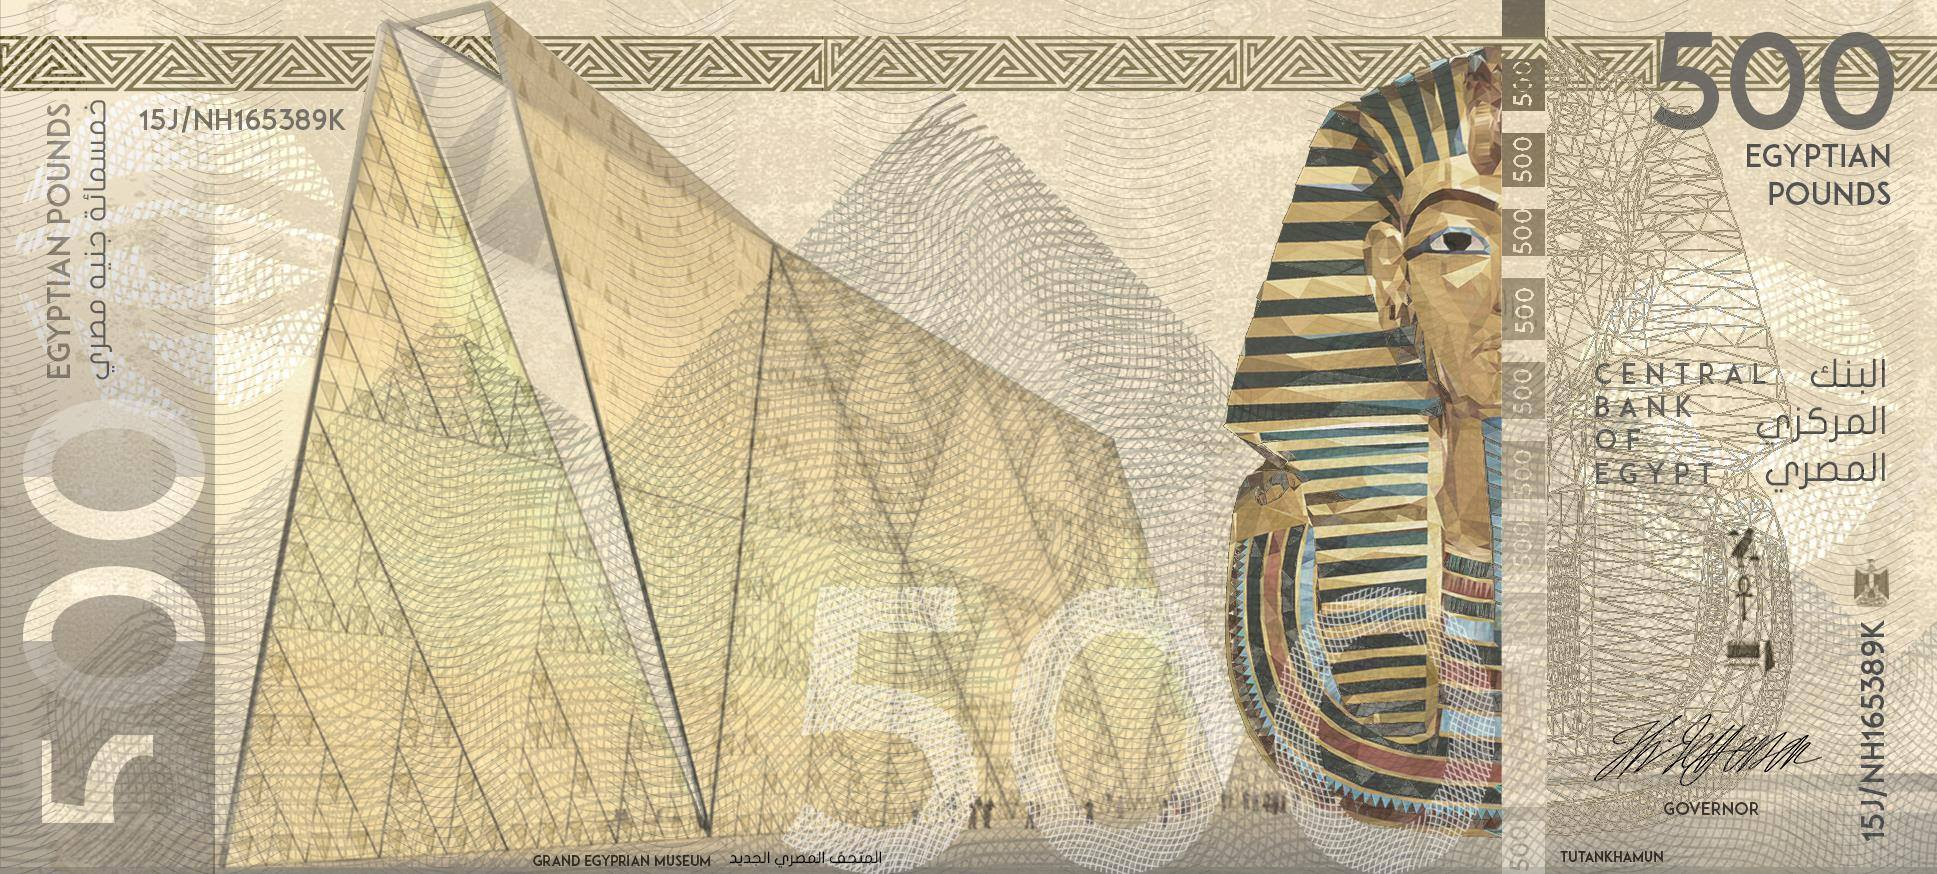 One mans currency design challenge raises questions about a le500 by mirna mikhail biocorpaavc Images